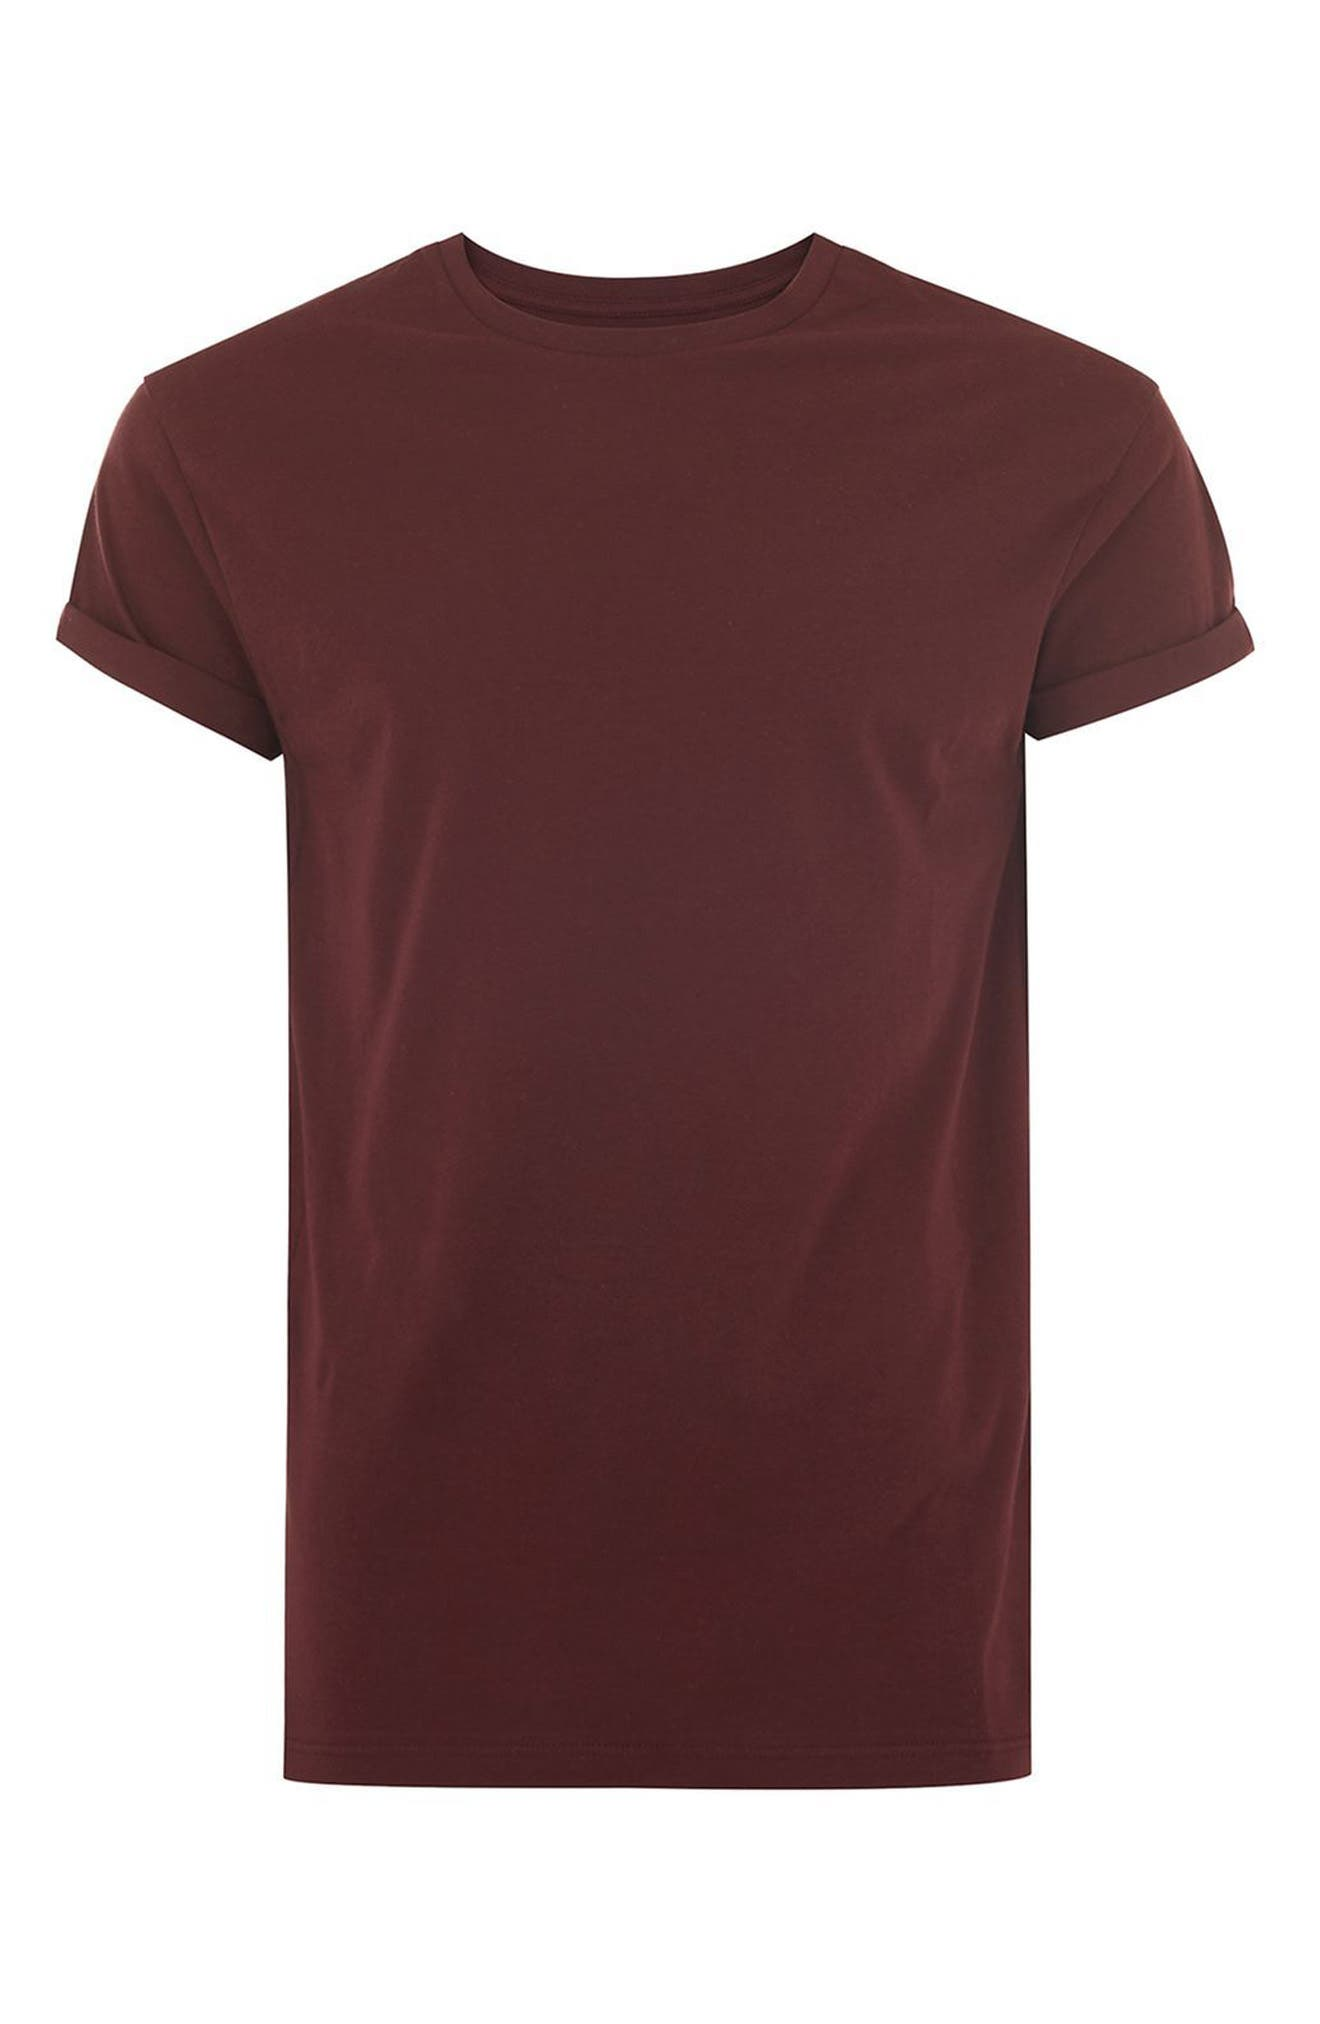 Muscle Fit Roller T-Shirt,                             Alternate thumbnail 4, color,                             Burgundy